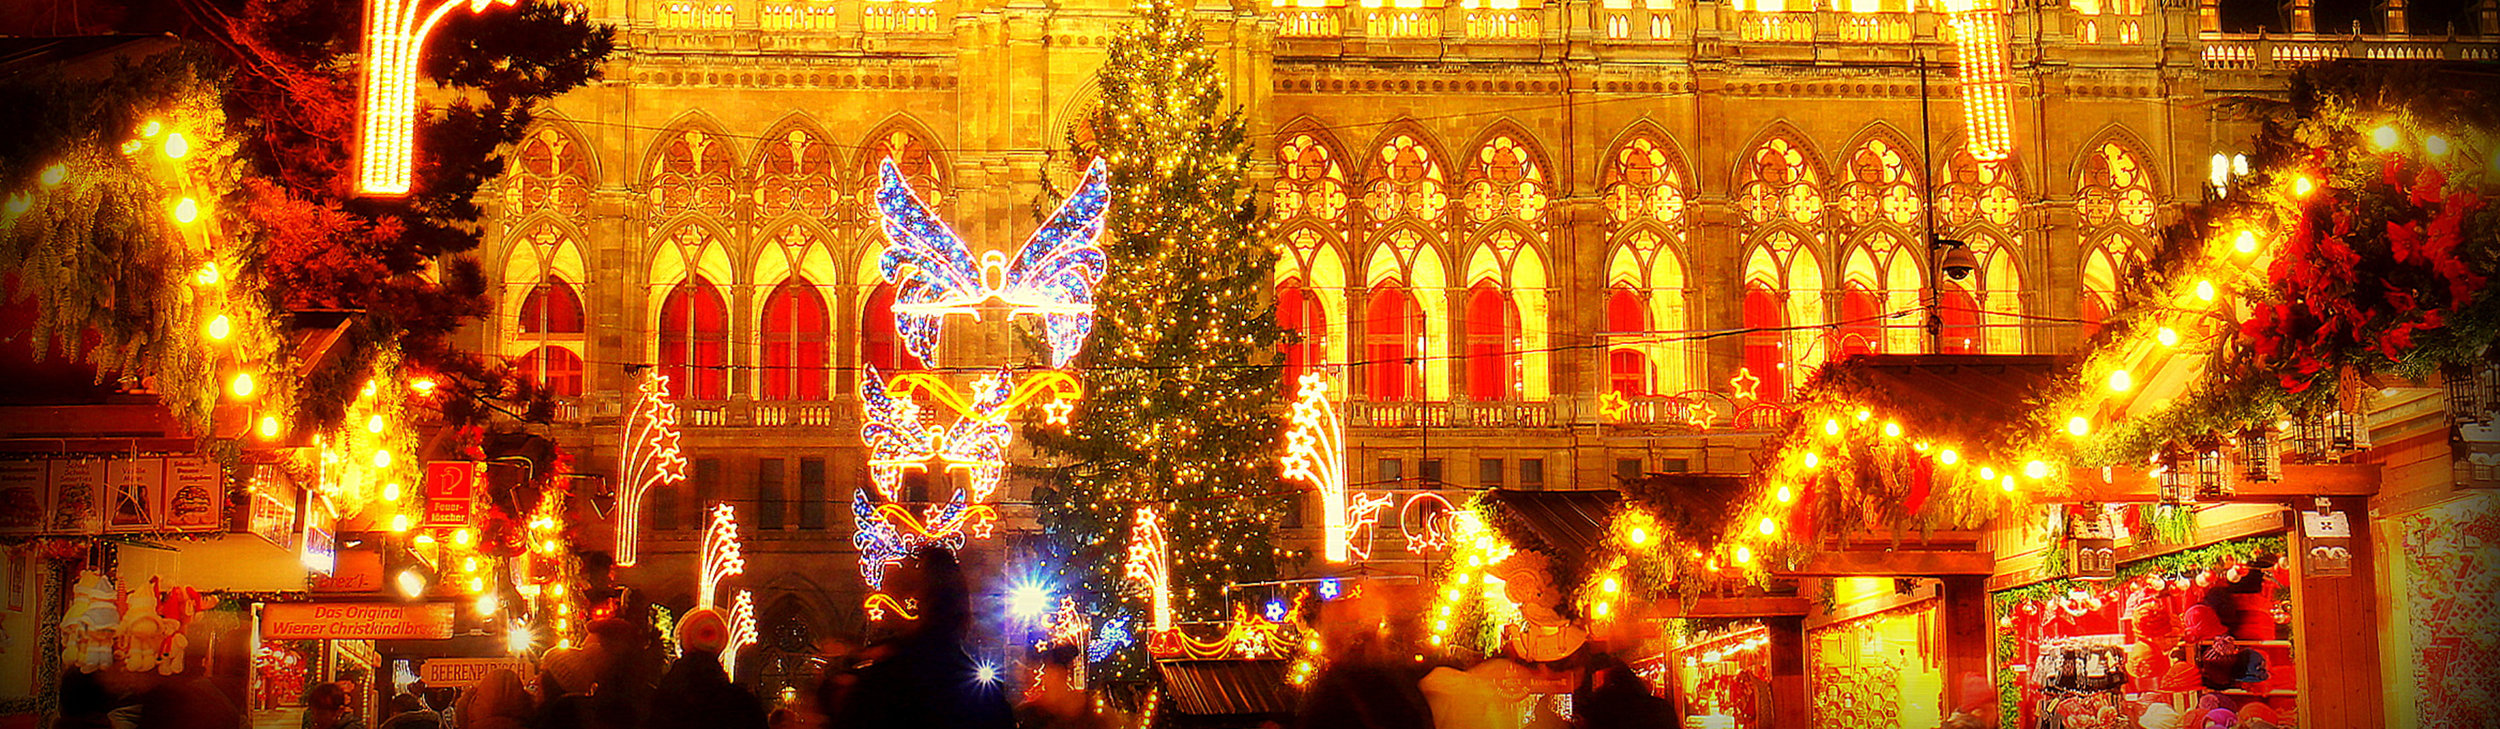 Christmas Markets of Germany and Austria